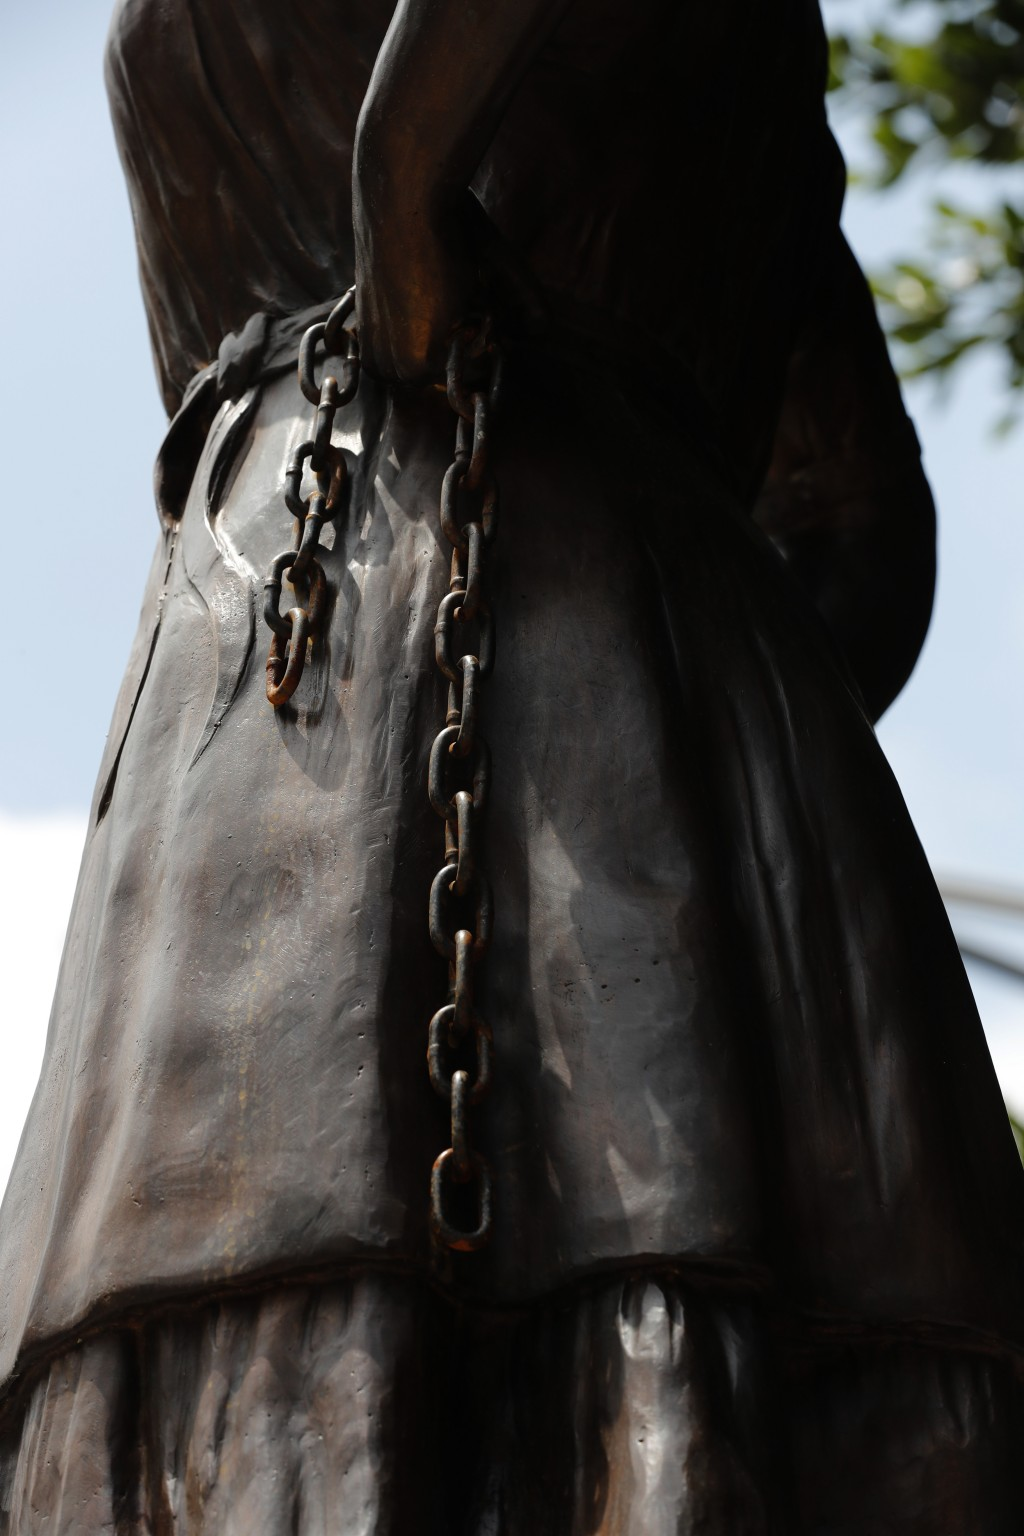 Rust begins to cover a statue of independence heroine Leona Vicario on Paseo de la Reforma in Mexico City, Sunday, September 13, 2020. Mexico will cel...